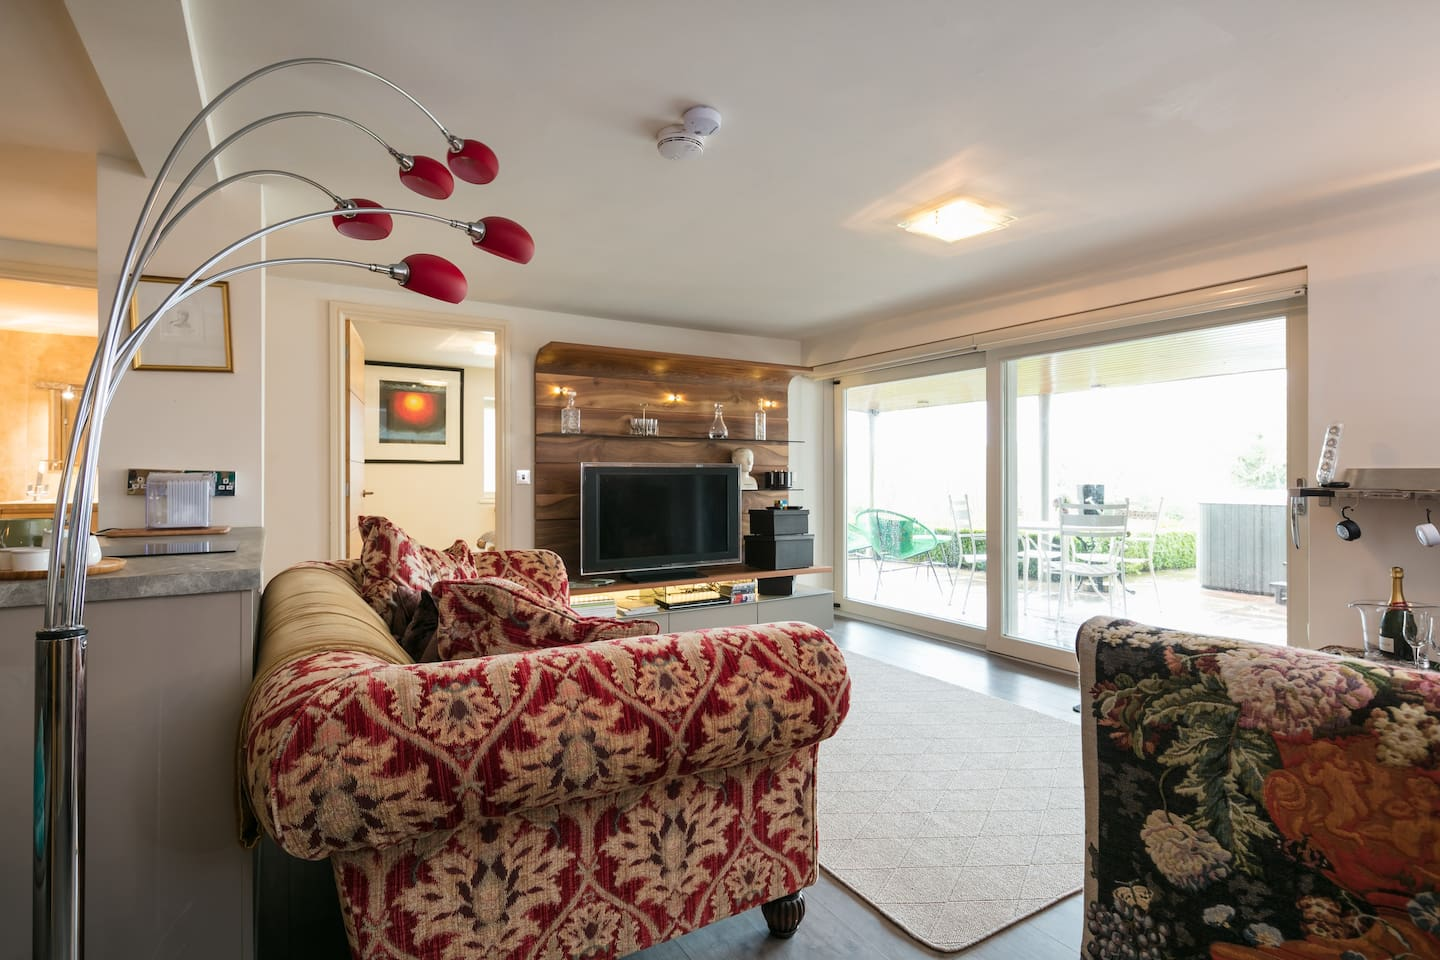 View of sitting room with two oversize comfy sofas, large screen television, and view out into garden and patio.